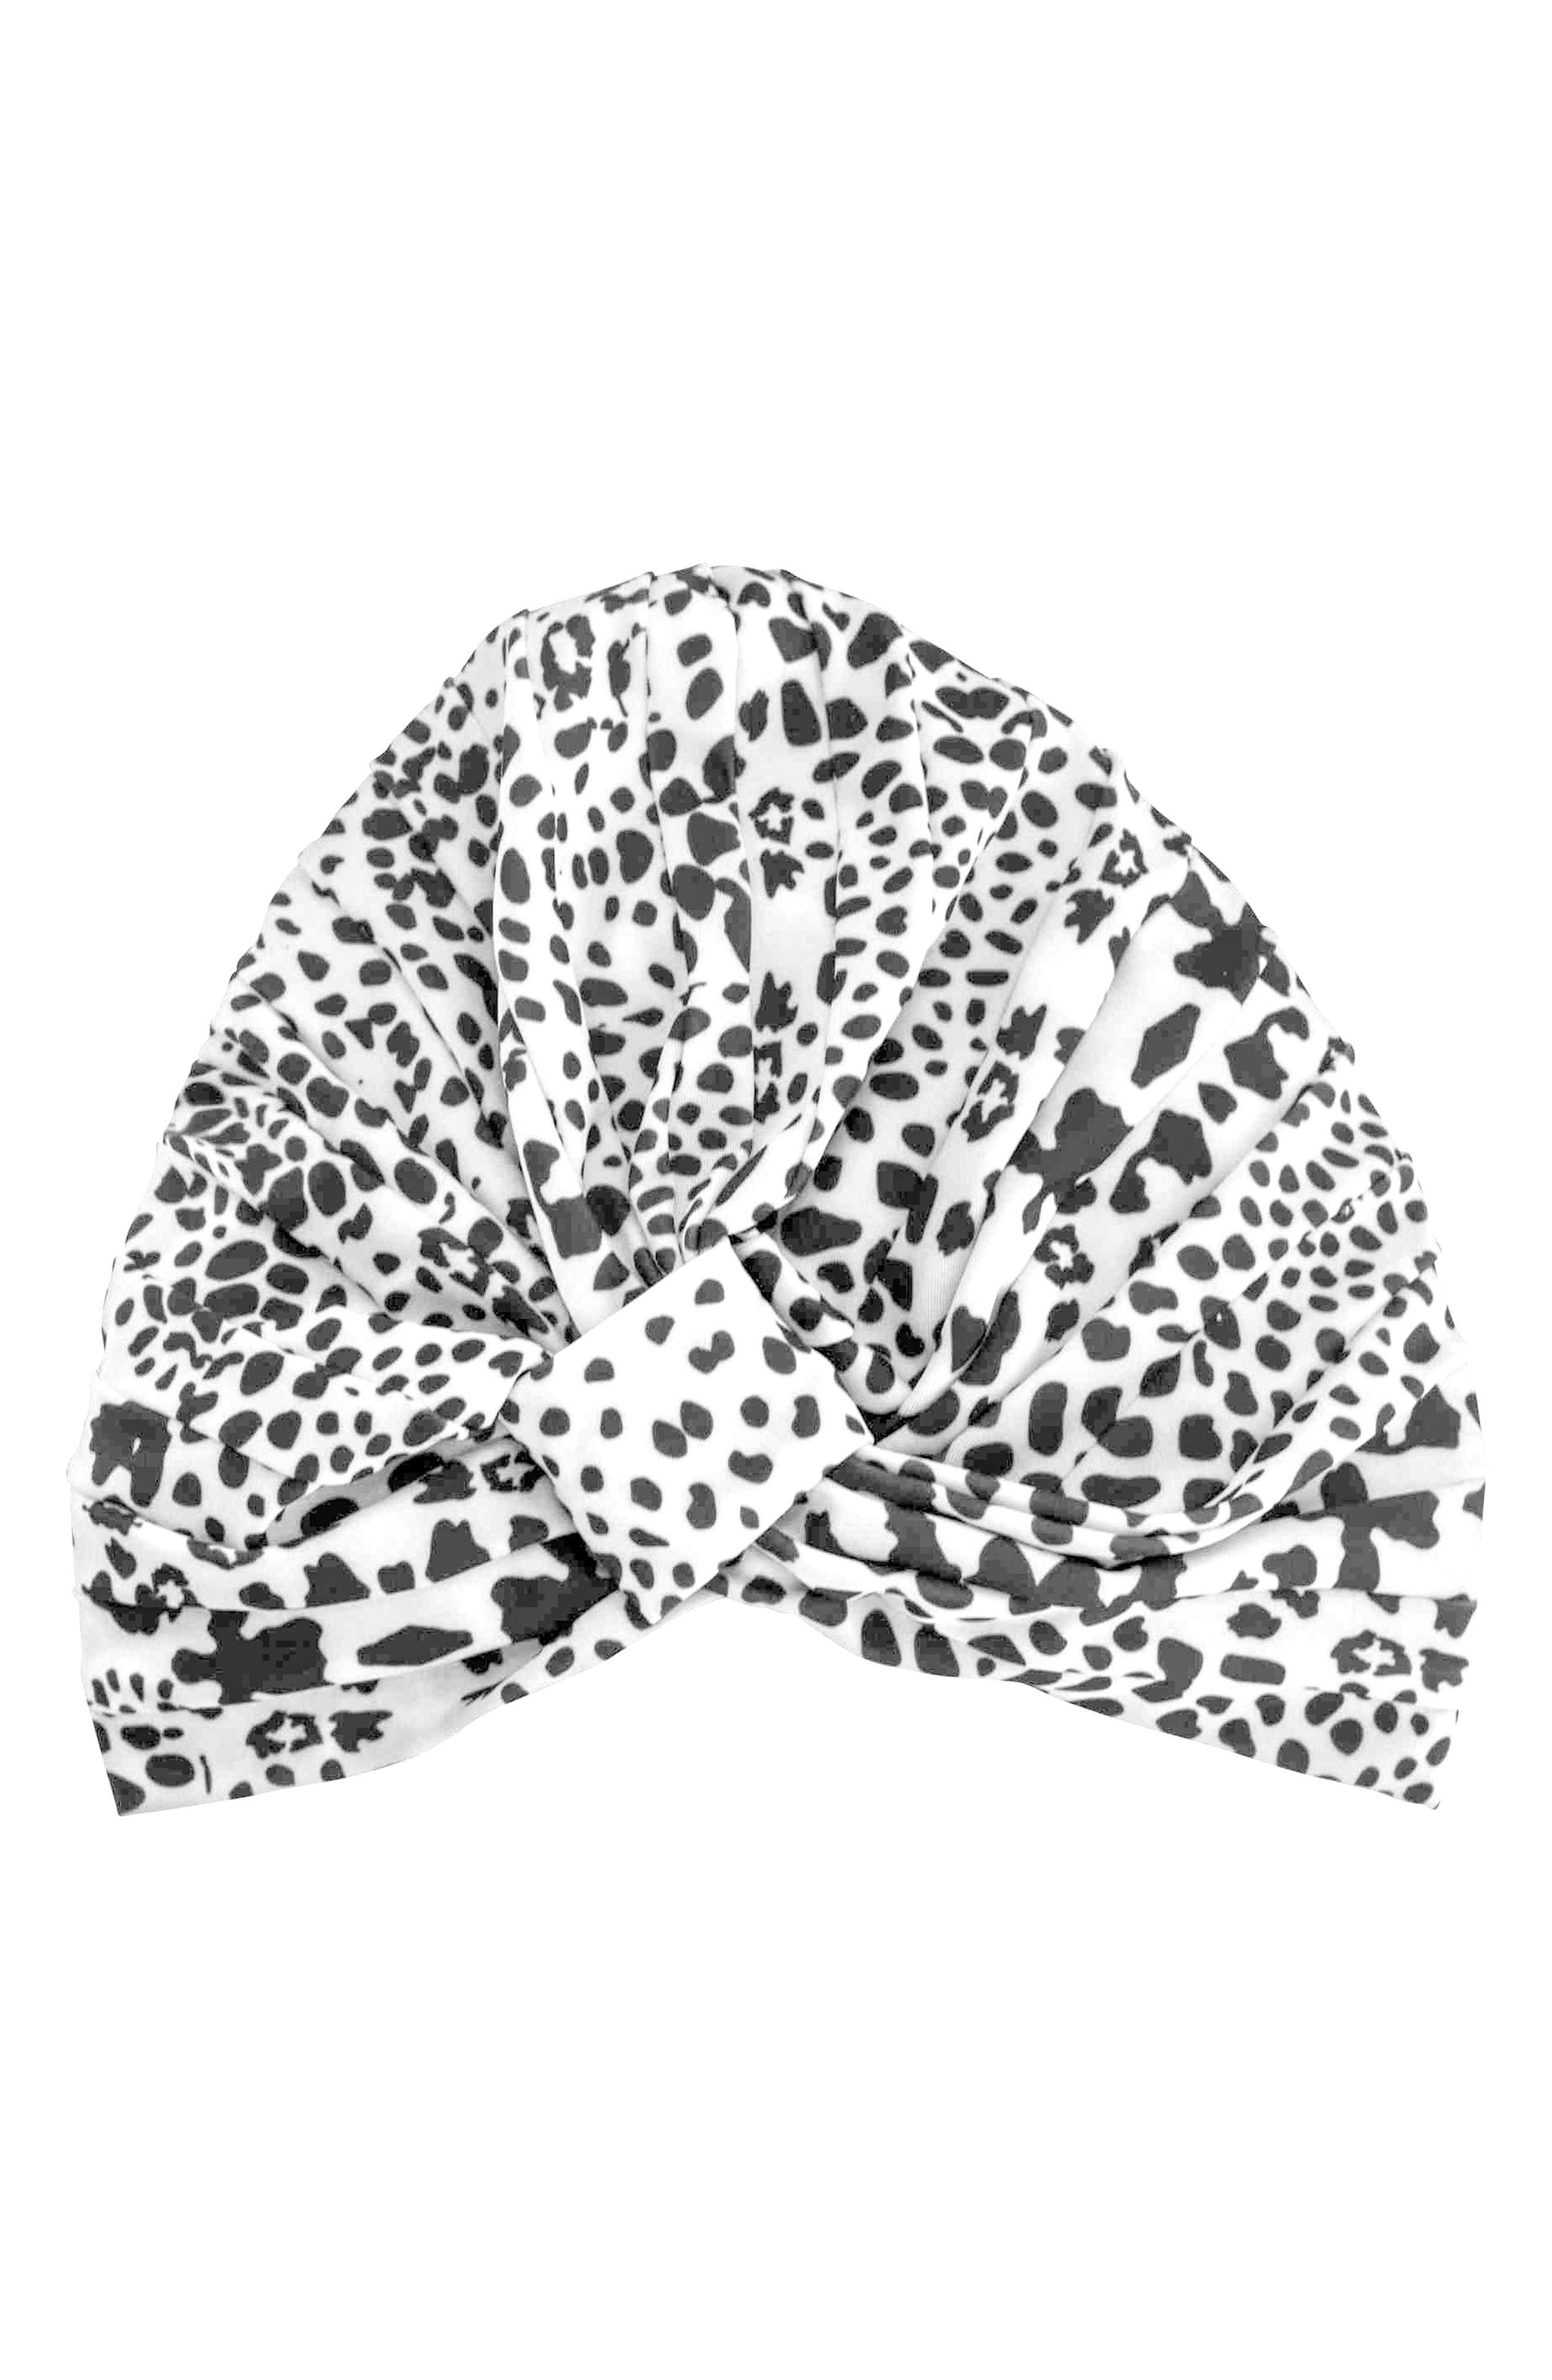 Louvelle Amelie Turban Shower Cap